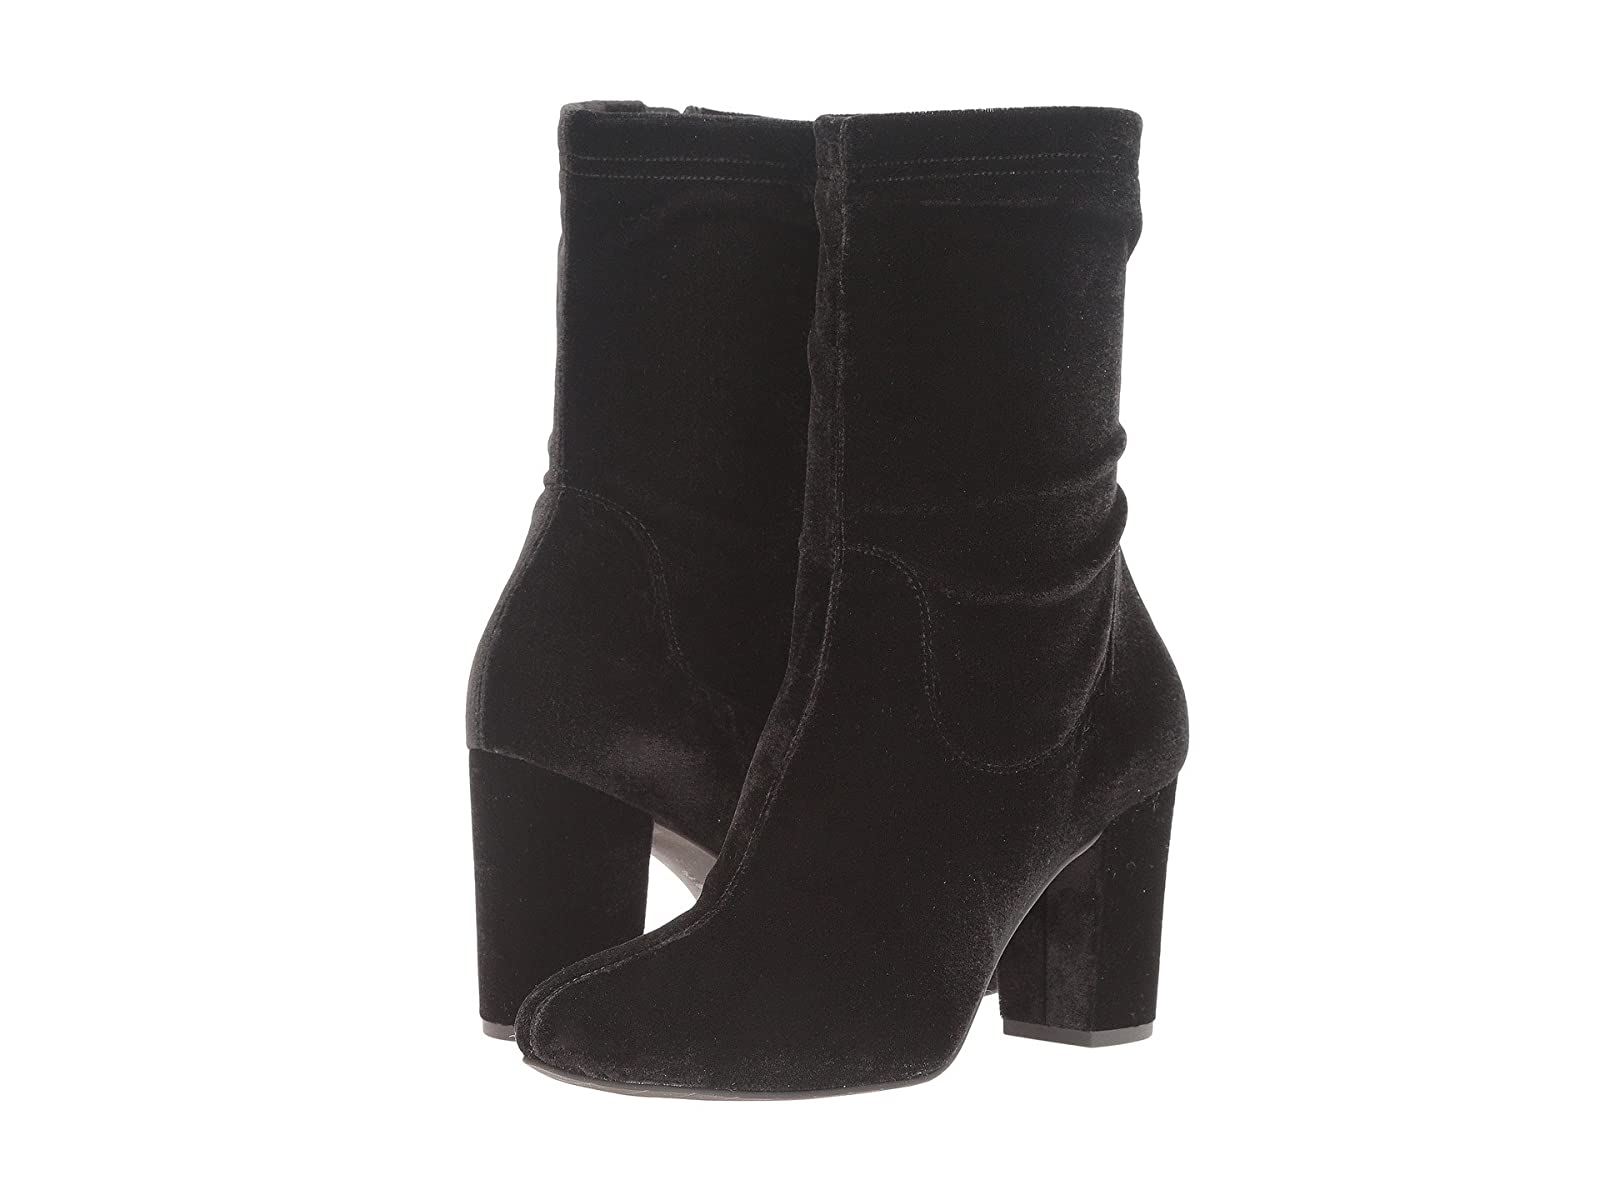 Kenneth Cole New York AlyssaCheap and distinctive eye-catching shoes